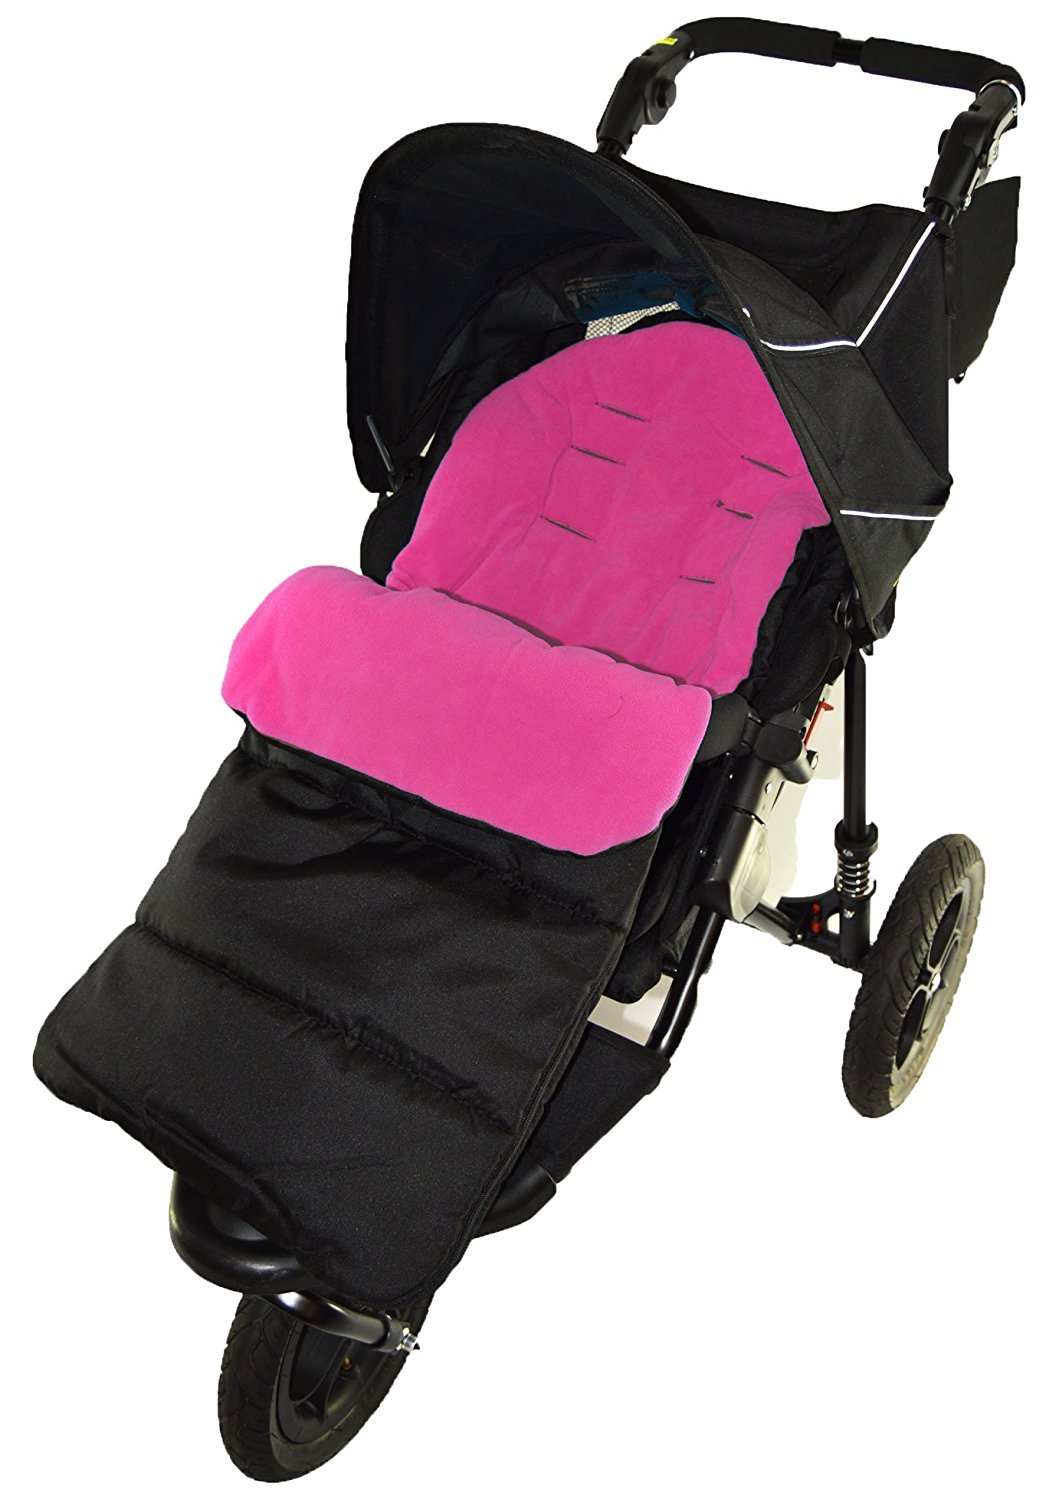 Footmuff/Cosy Toes Compatible with Out n About Little Nipper Pushchair Pink Rose For-Your-Little-One